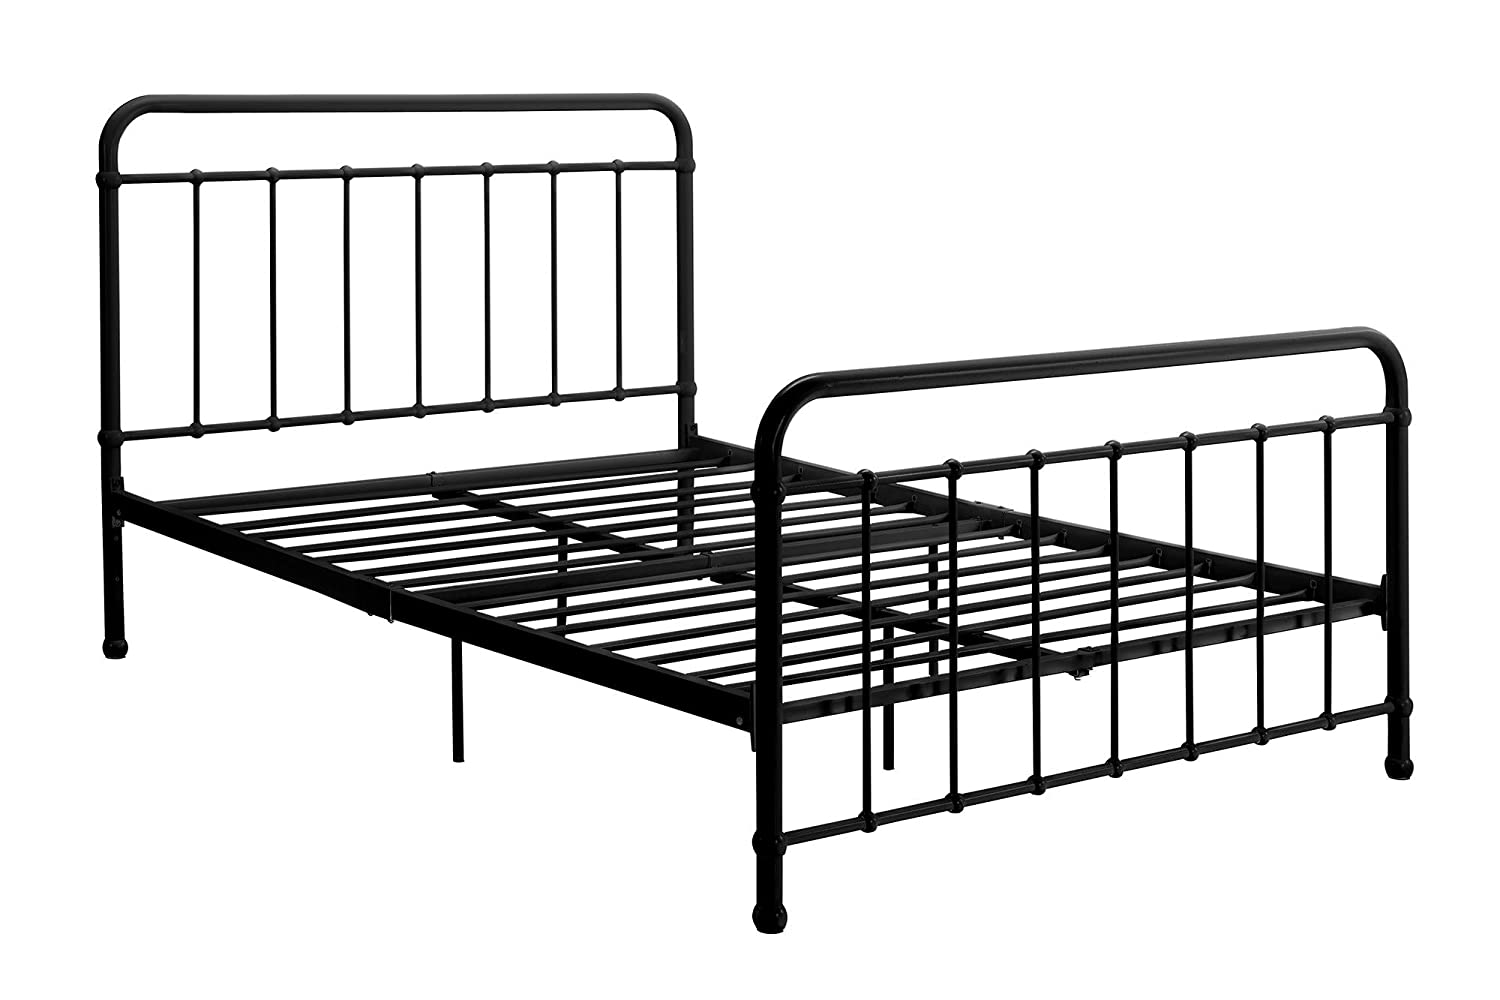 "DHP Brooklyn Metal Iron Bed w/ Headboard and Footboard, Adjustable height (7"" or 11"" clearance for storage), Sturdy Slats Included, No Box Spring Required, Twin Size Mattress, White Dorel Industries 3291096"